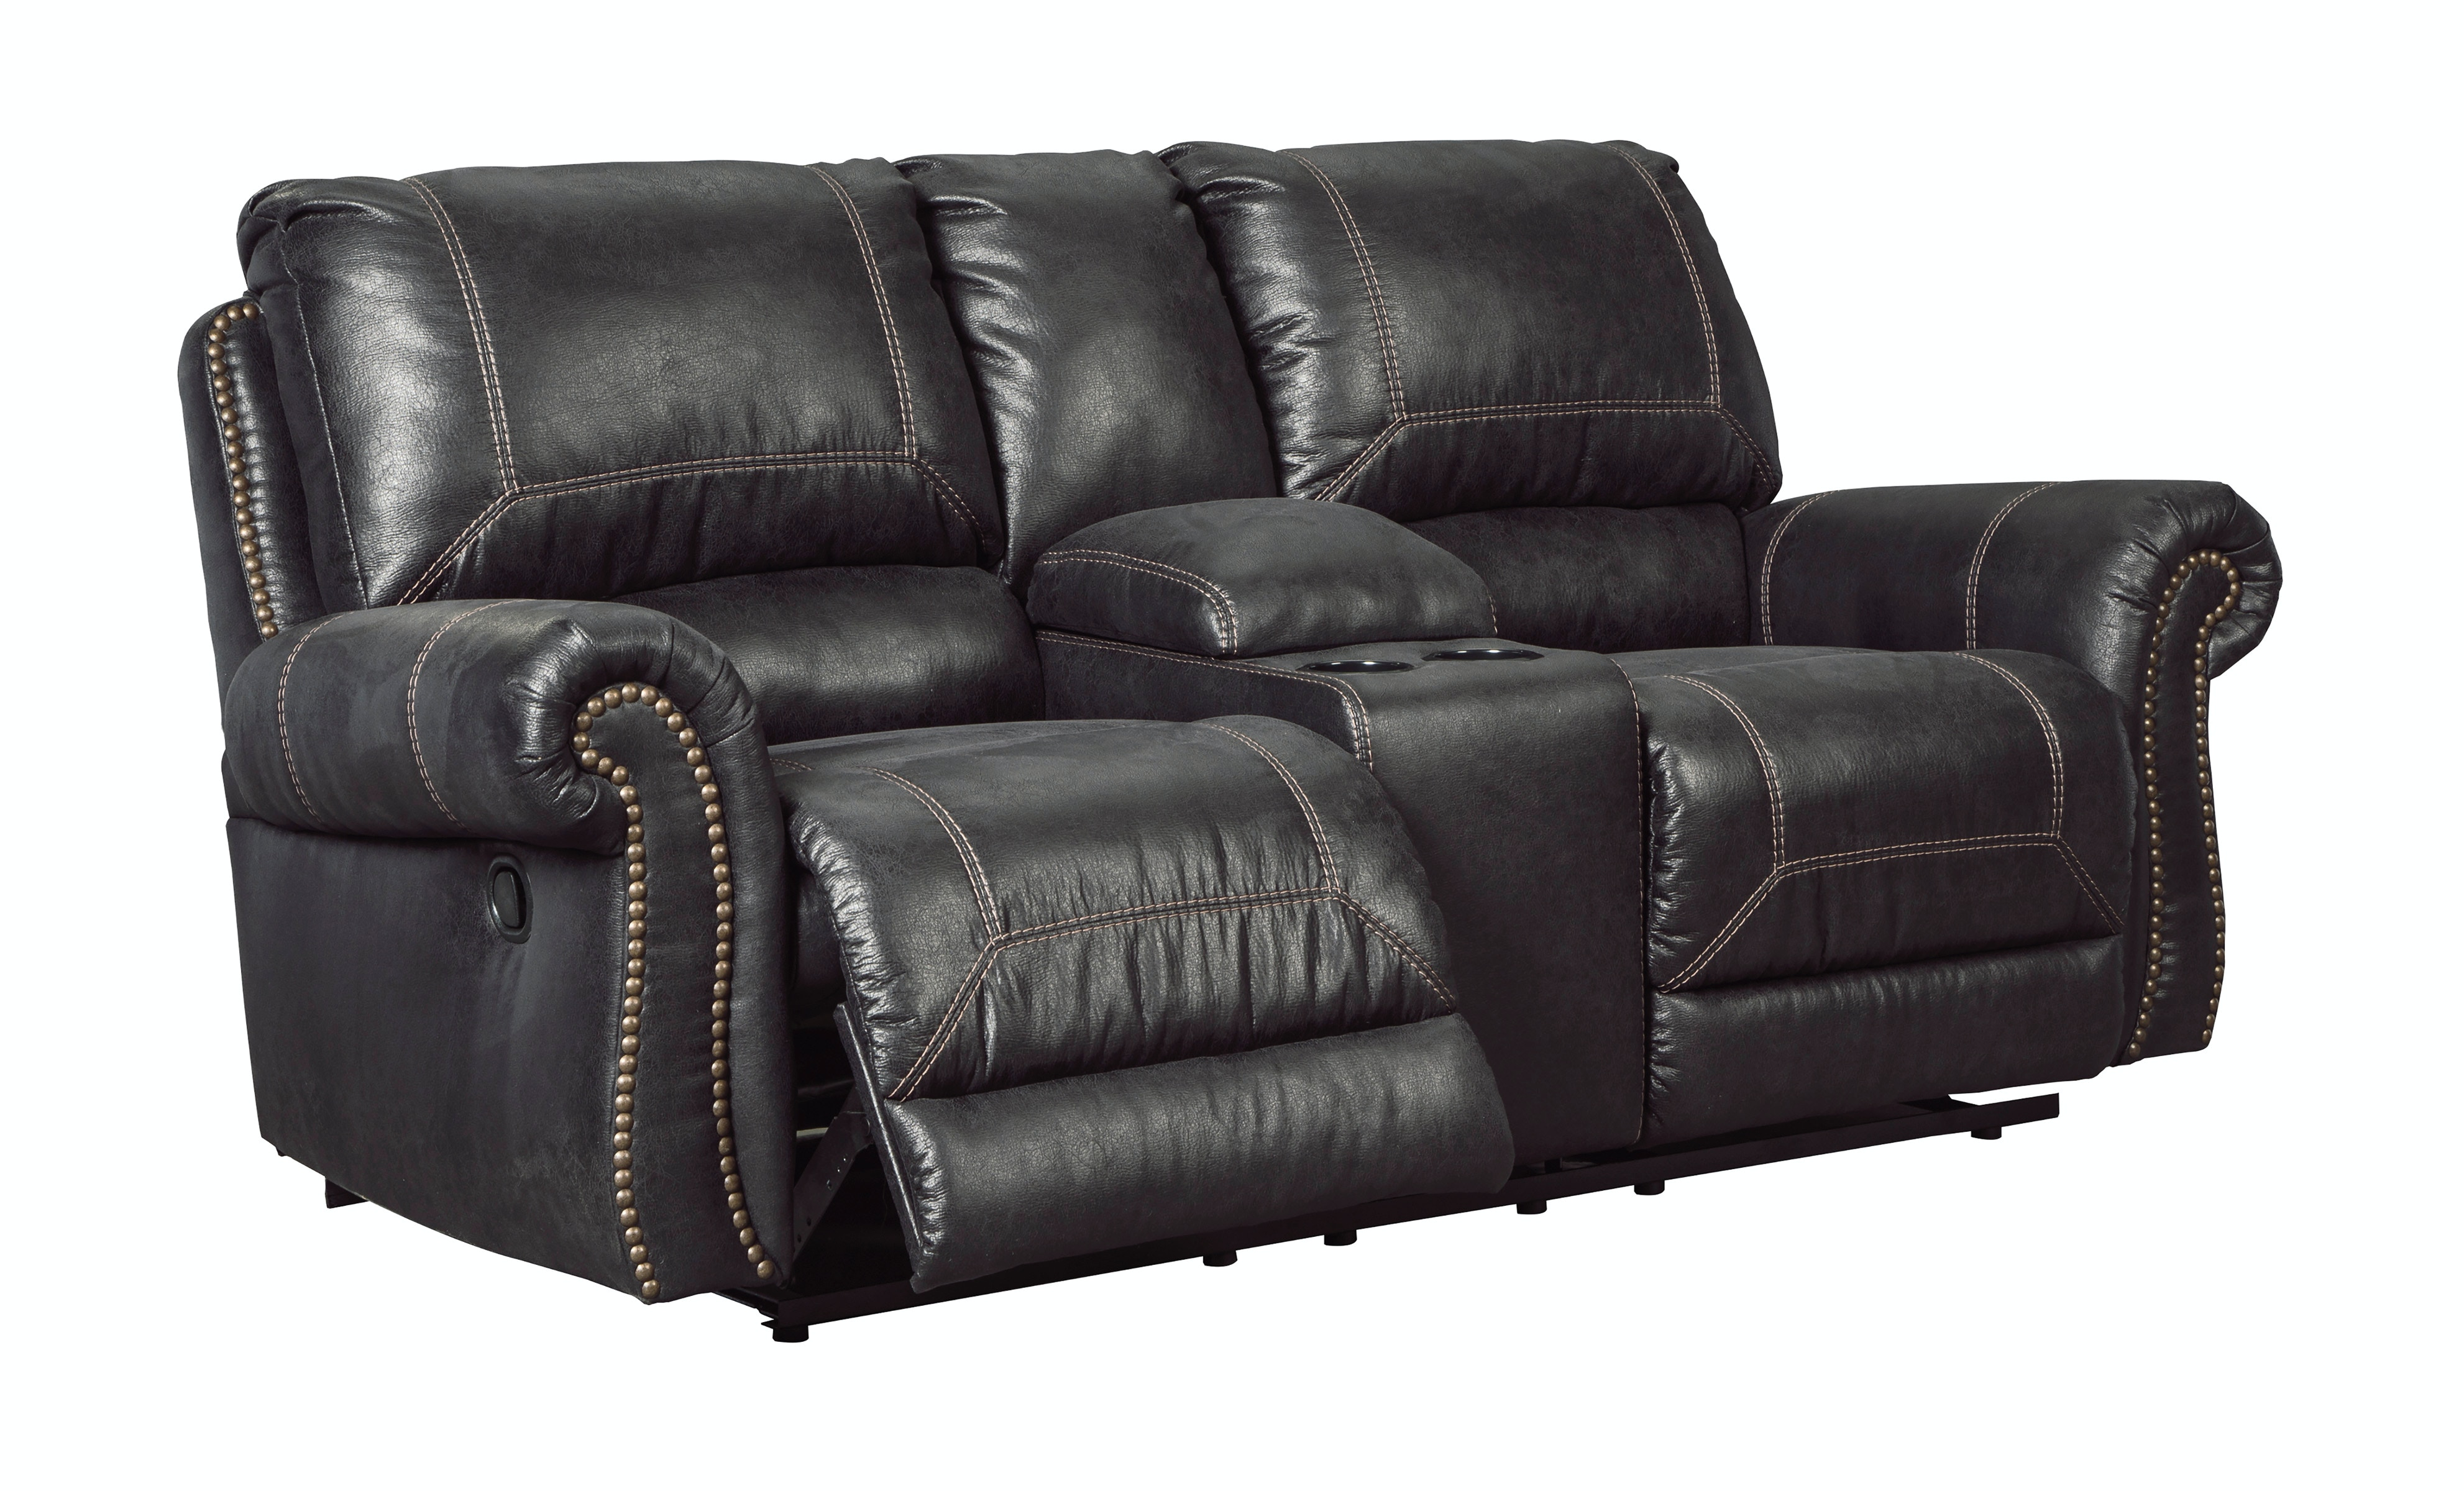 Milo Double Reclining Loveseat with Console ST487485  sc 1 st  Star Furniture & Living Room Milo Double Reclining Loveseat with Console islam-shia.org